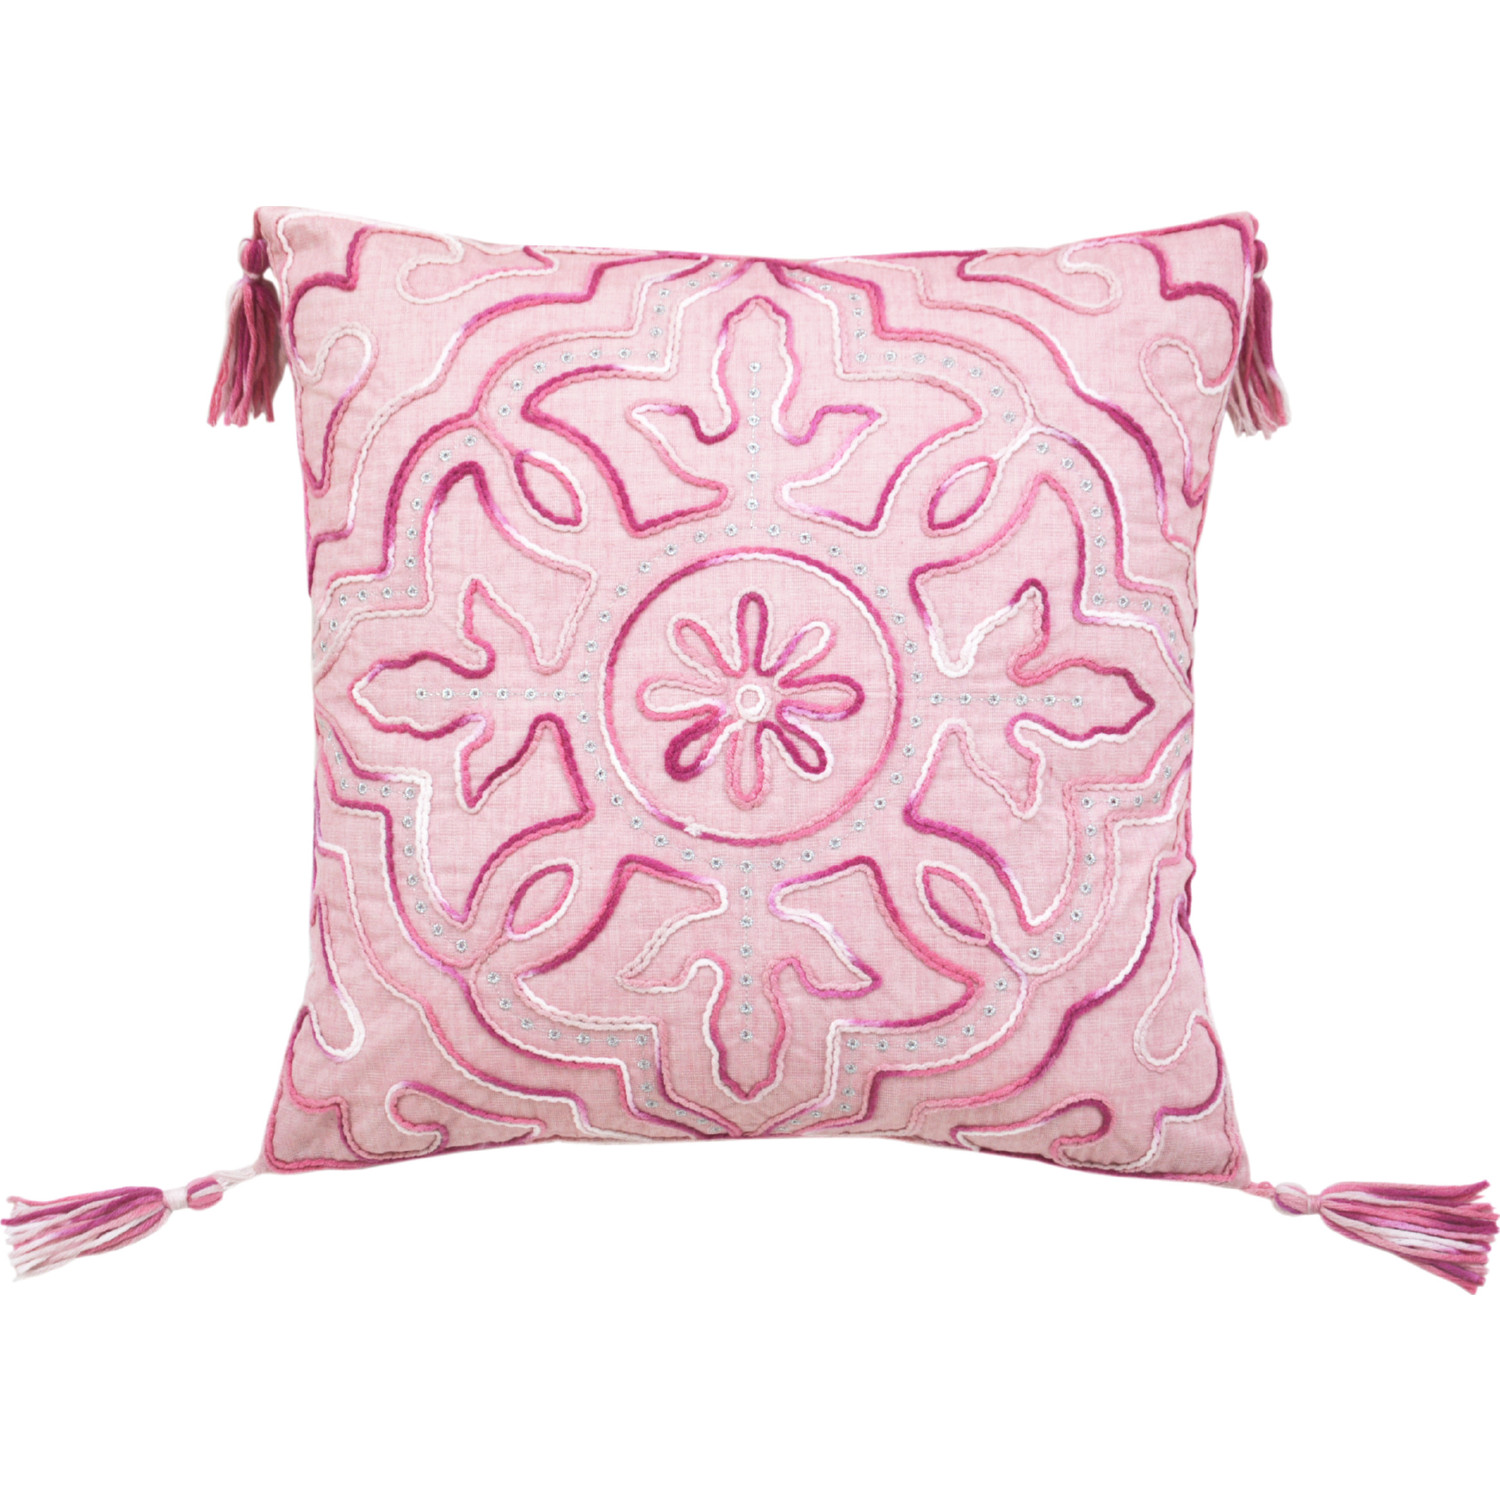 Lea Unlimited 82700 Tile Throw Pillow In Pink Chenille W Pink Tassels